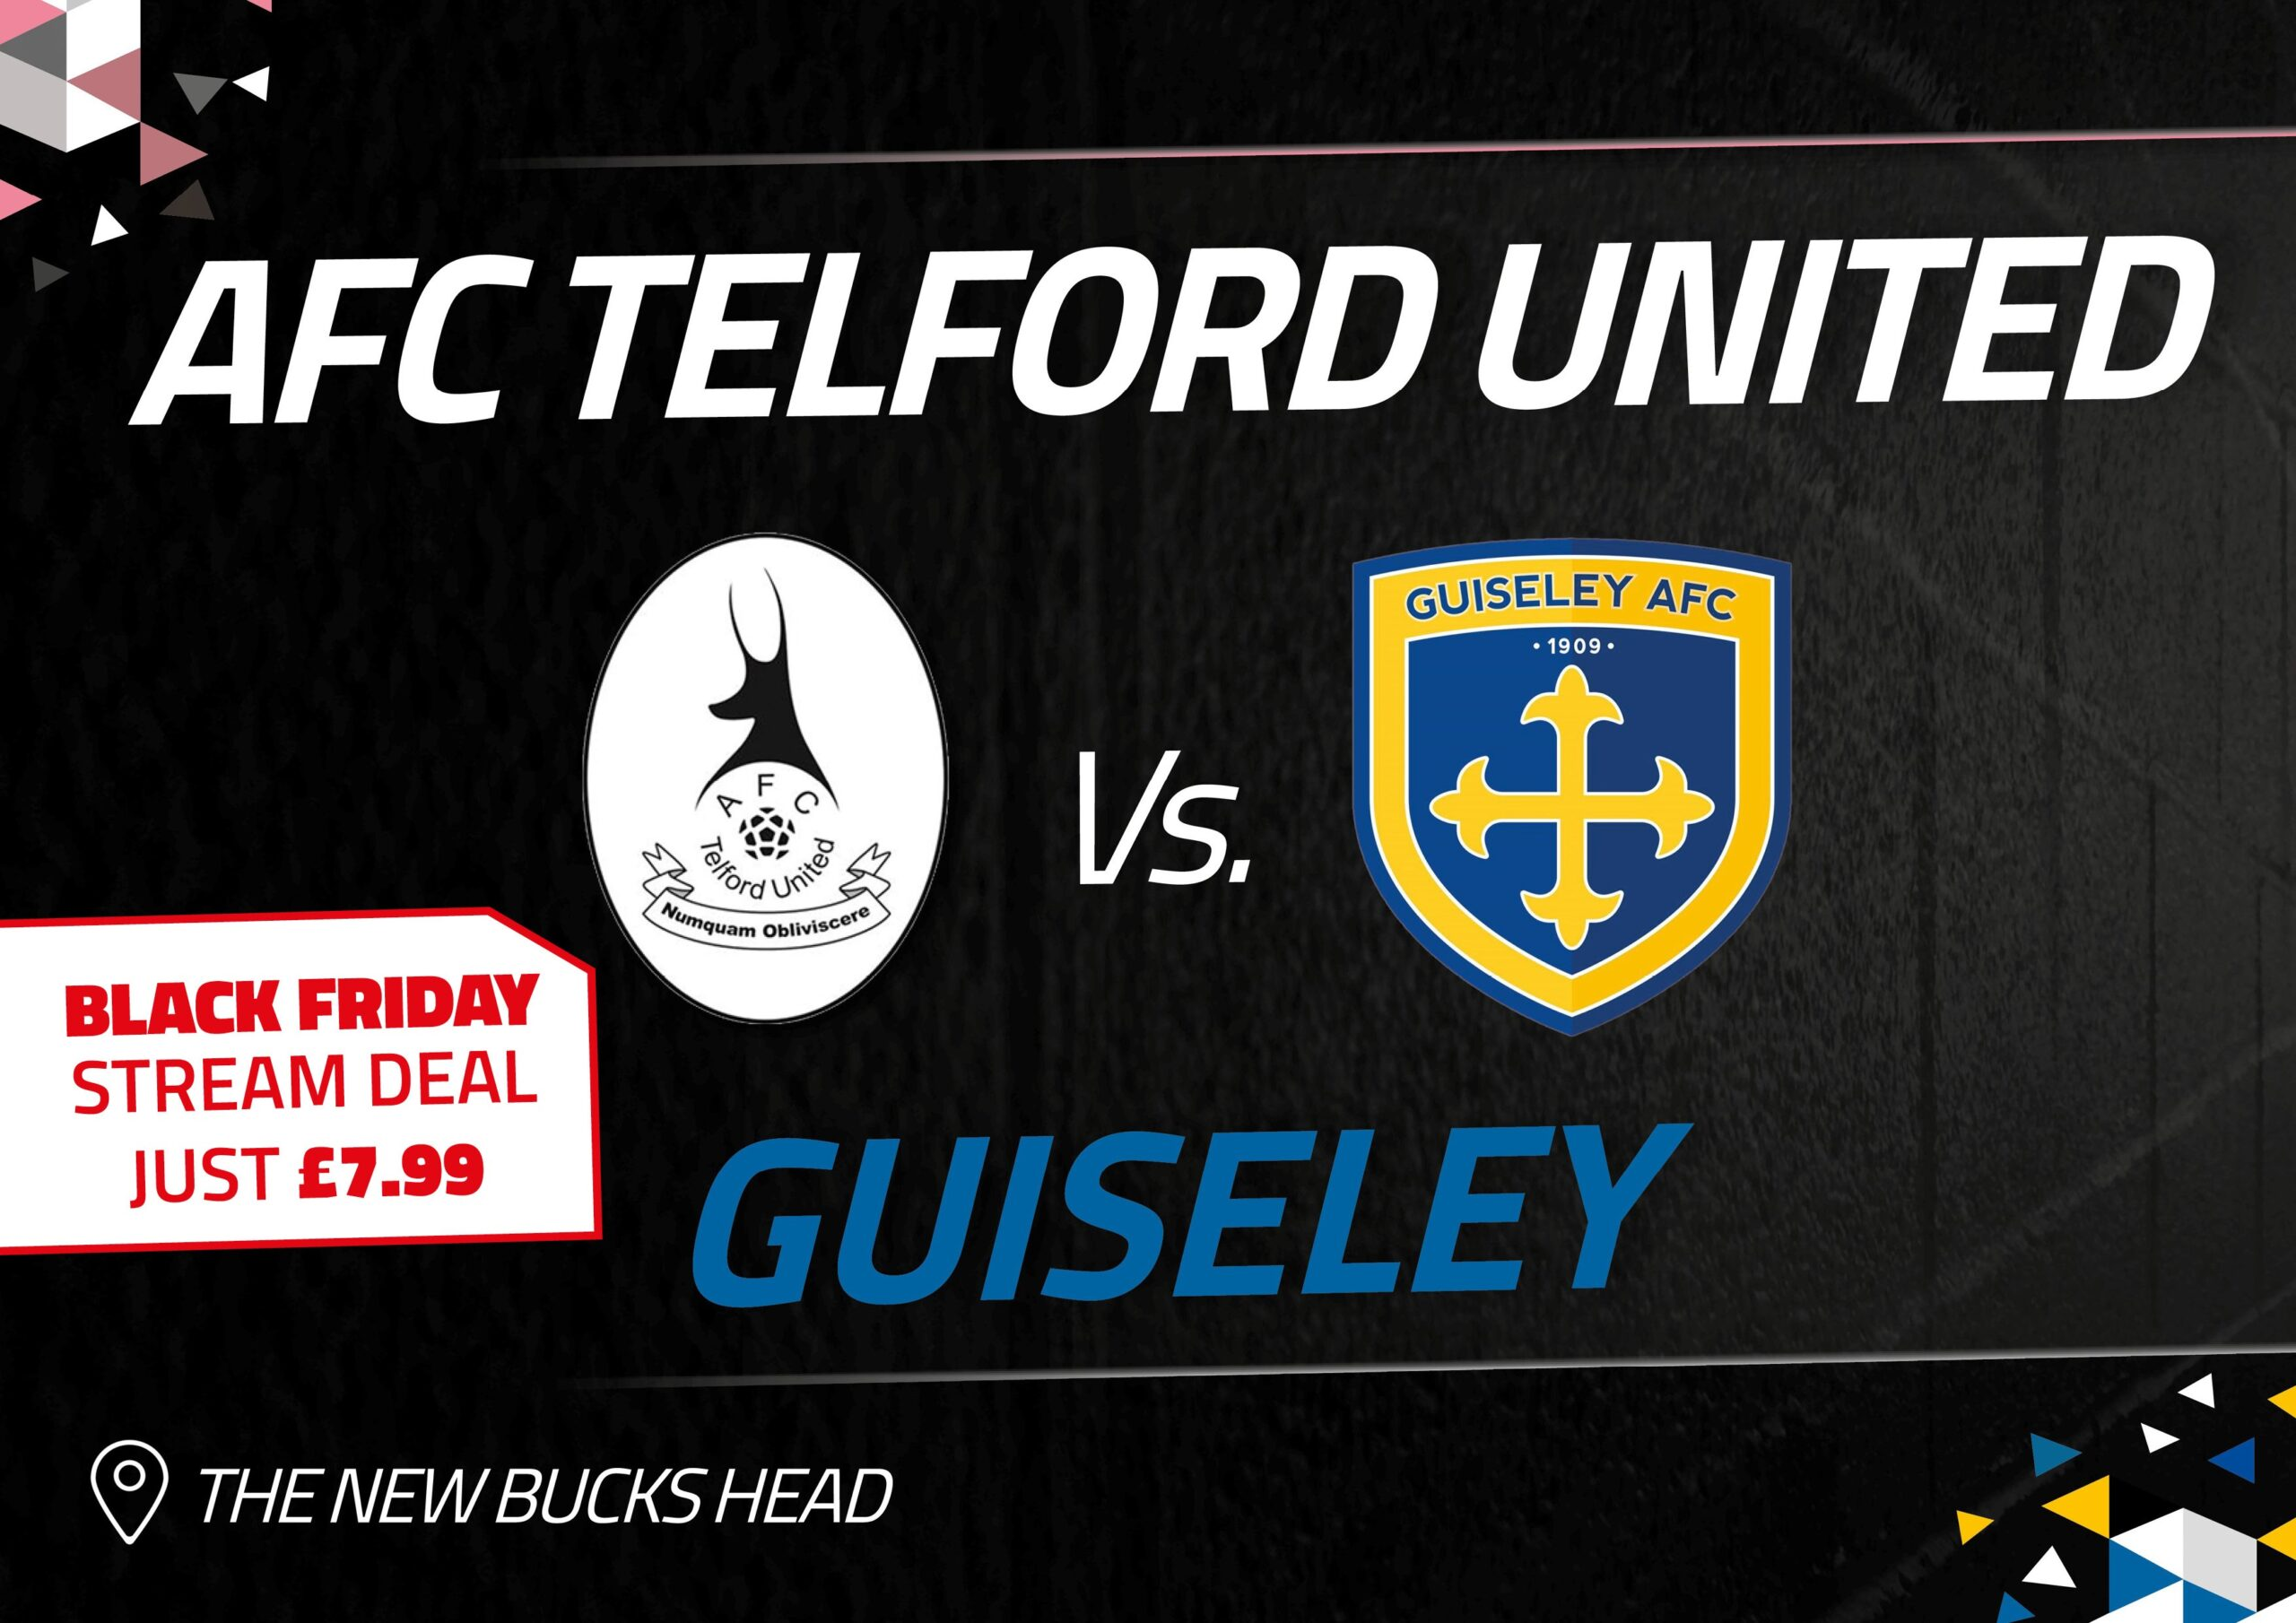 Guiseley: Live Stream Black Friday Deal